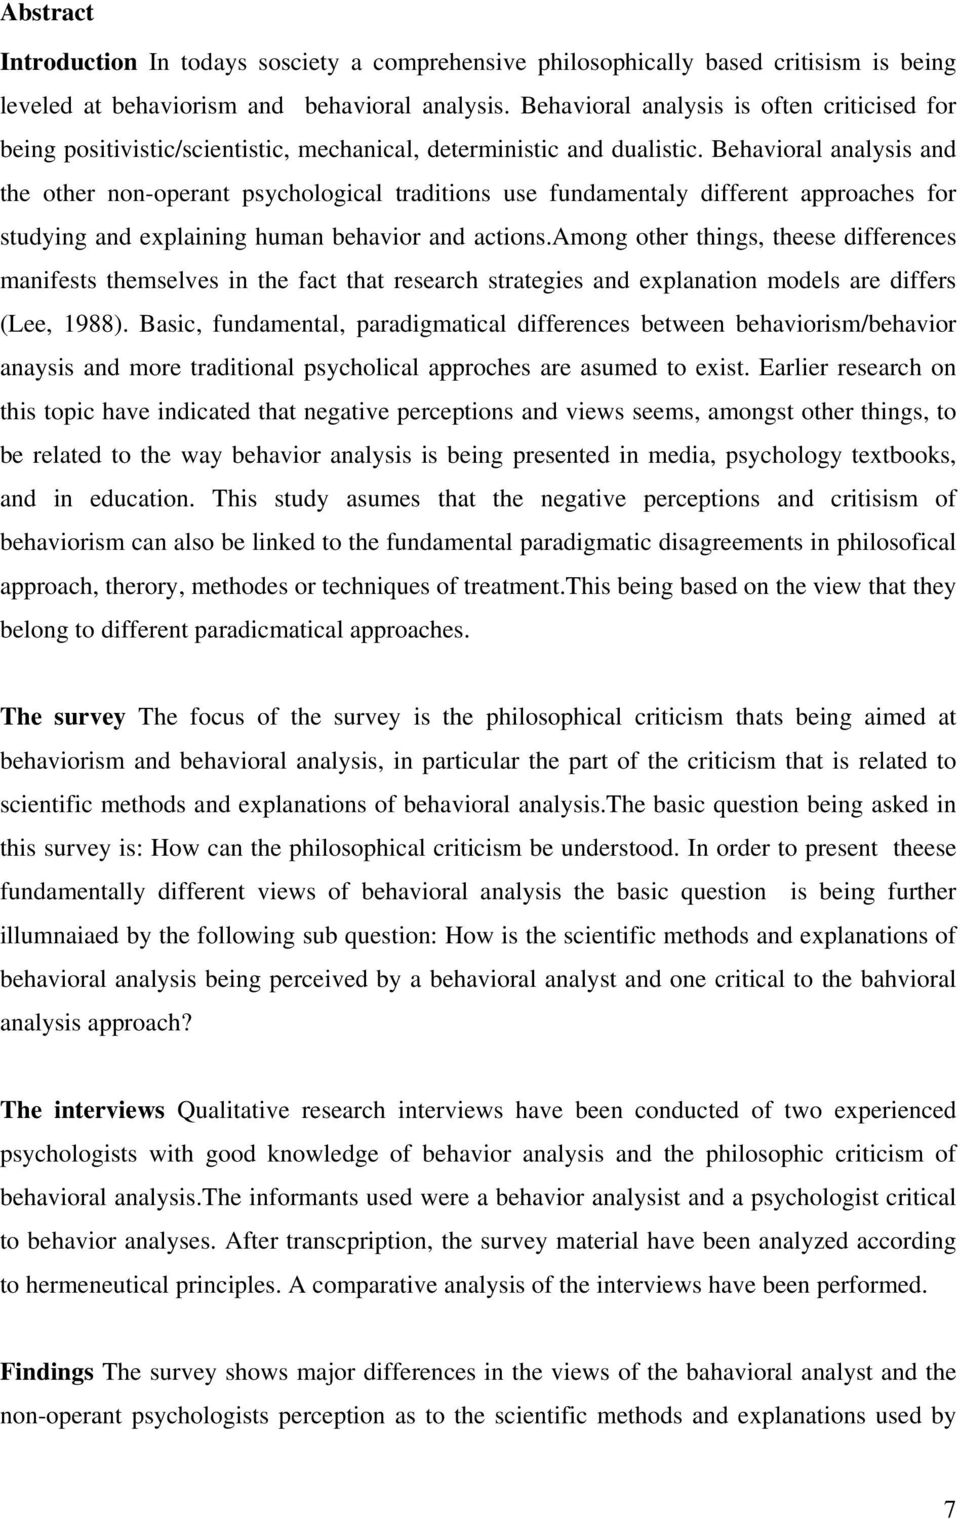 Behavioral analysis and the other non-operant psychological traditions use fundamentaly different approaches for studying and explaining human behavior and actions.